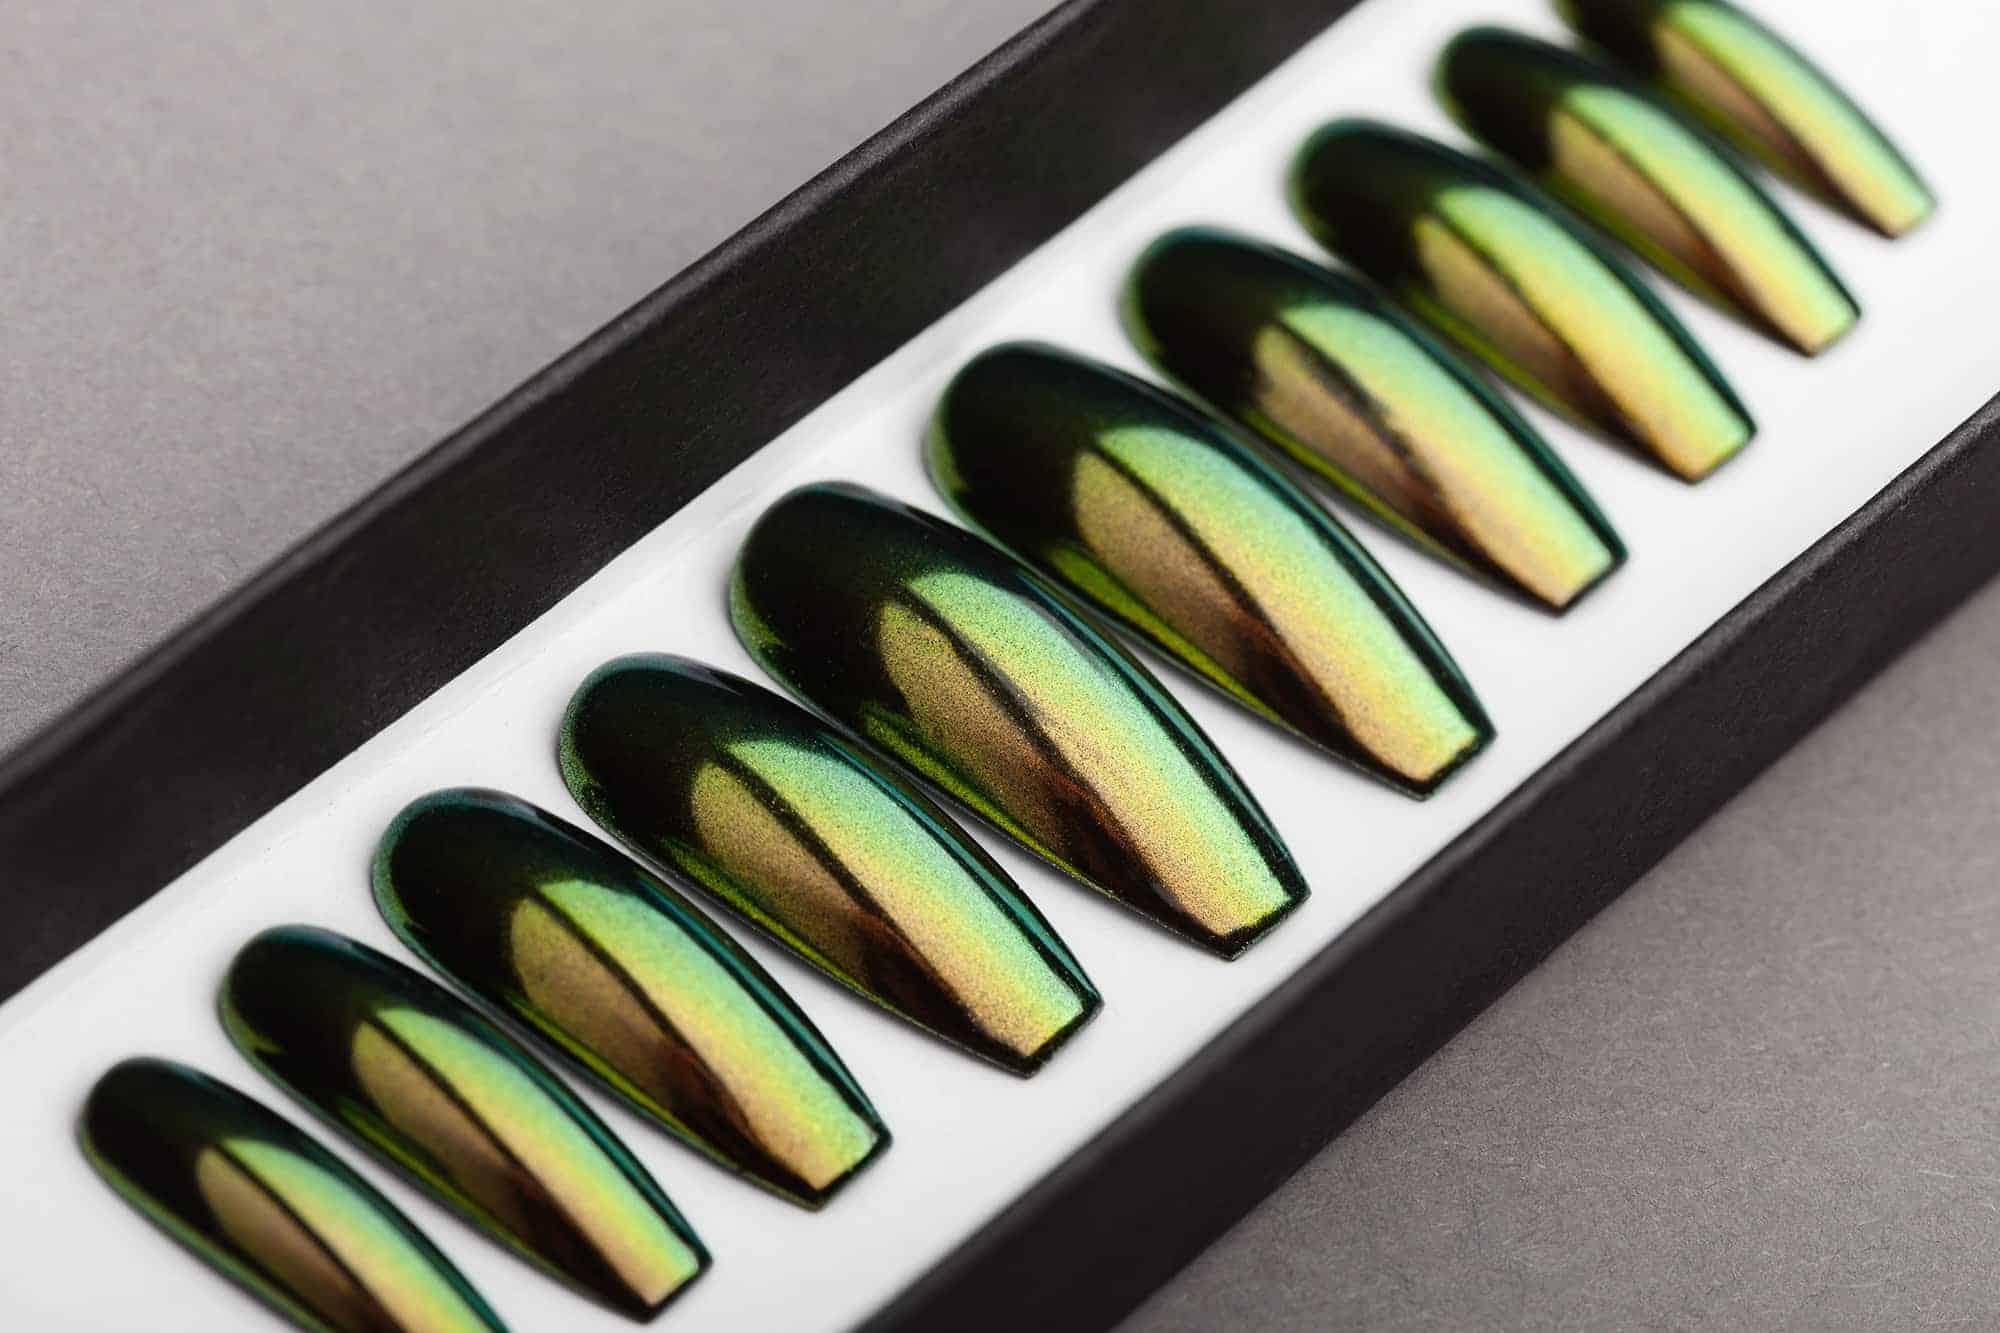 Green & Gold Mirror Press on Nails | Nude Nails | Handpainted Nail Art | Fake Nails | False Nails | Unicorn Nails | Chrome nails | Manicure